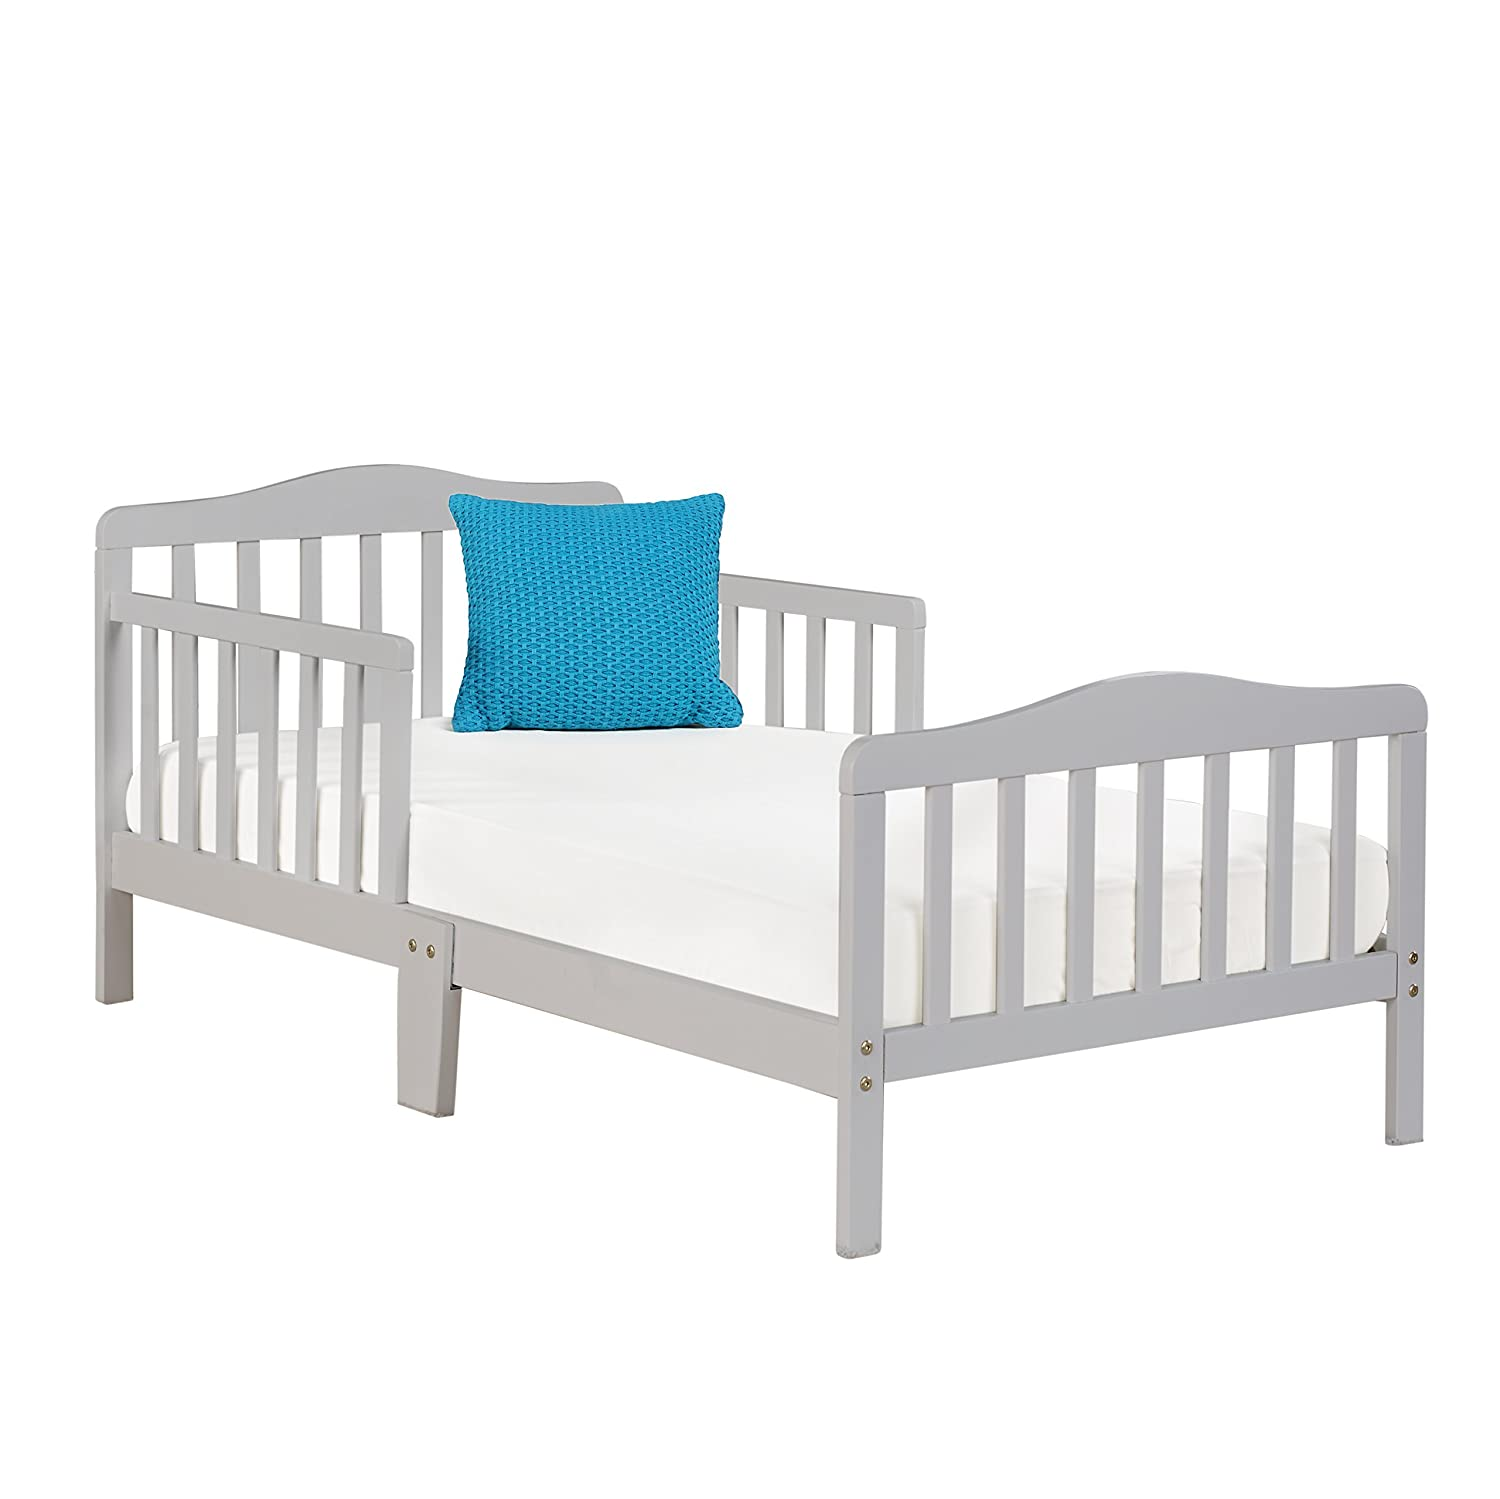 Big Oshi Contemporary Design Toddler Bed, Grey Babytime Intl. CRB-424